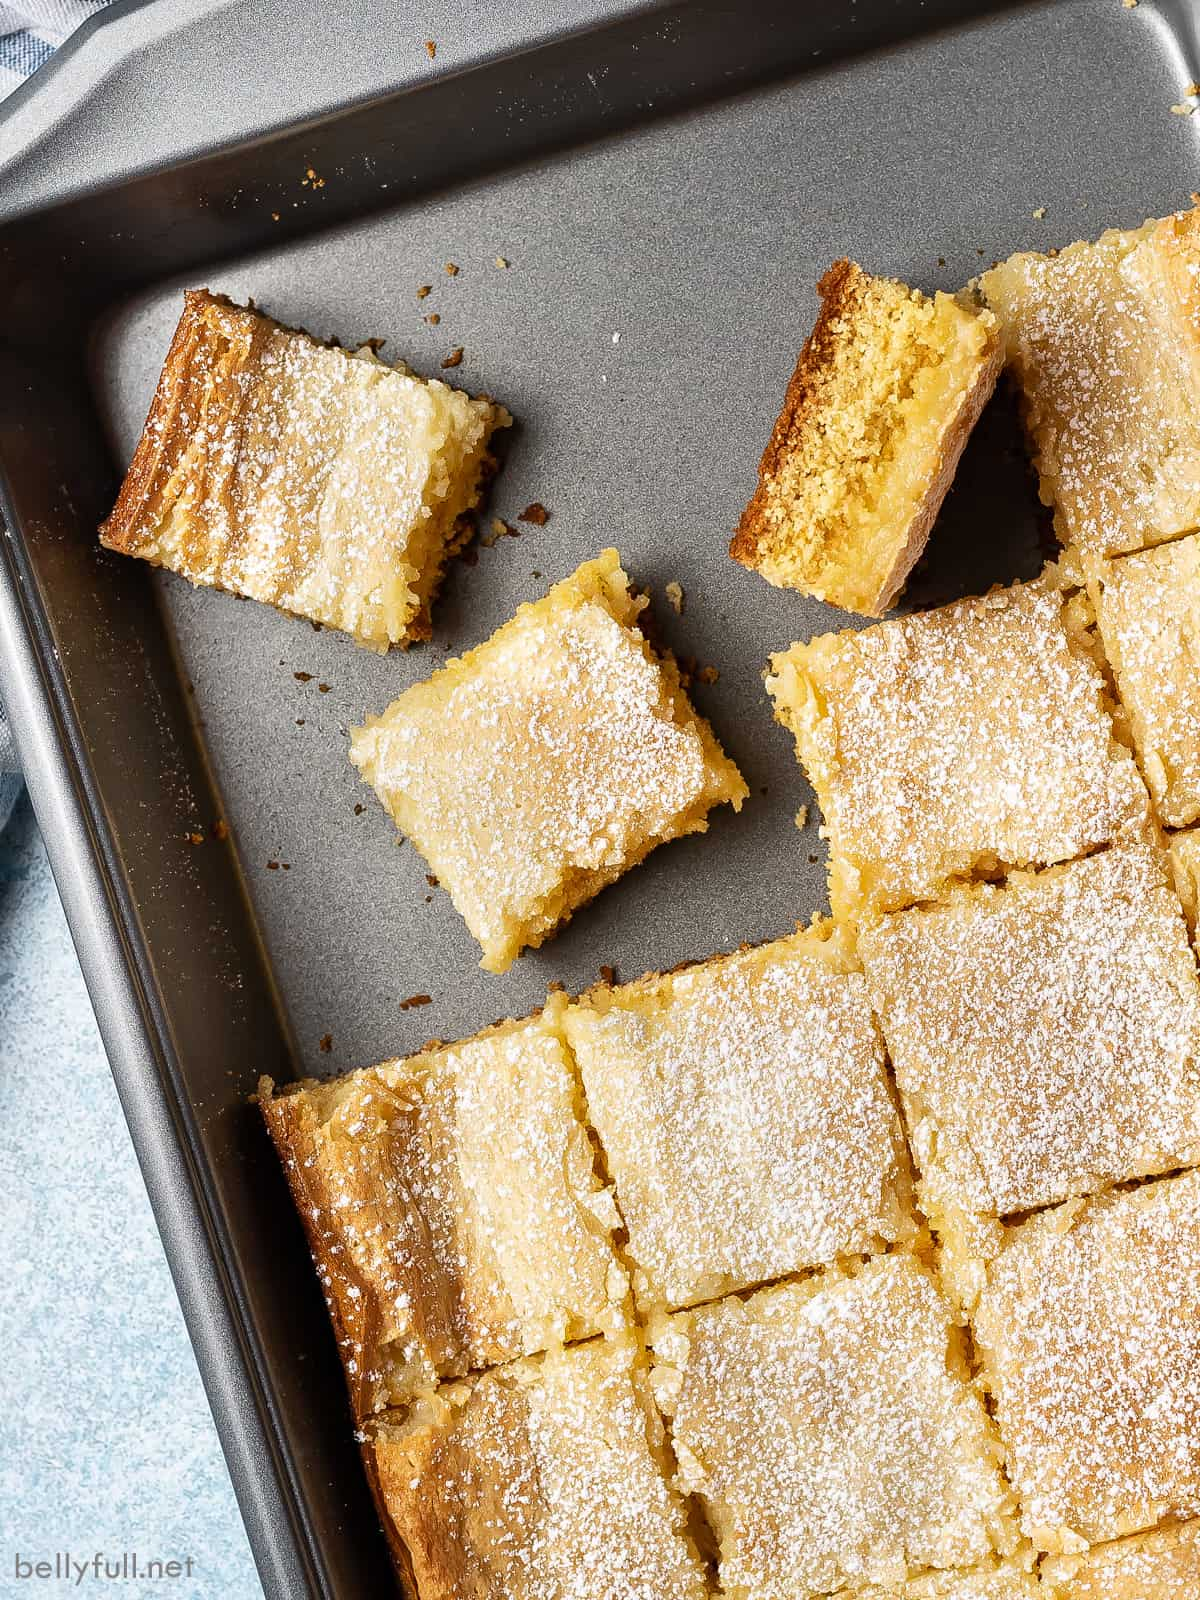 Gooey butter cake in a cake pan with some squares missing